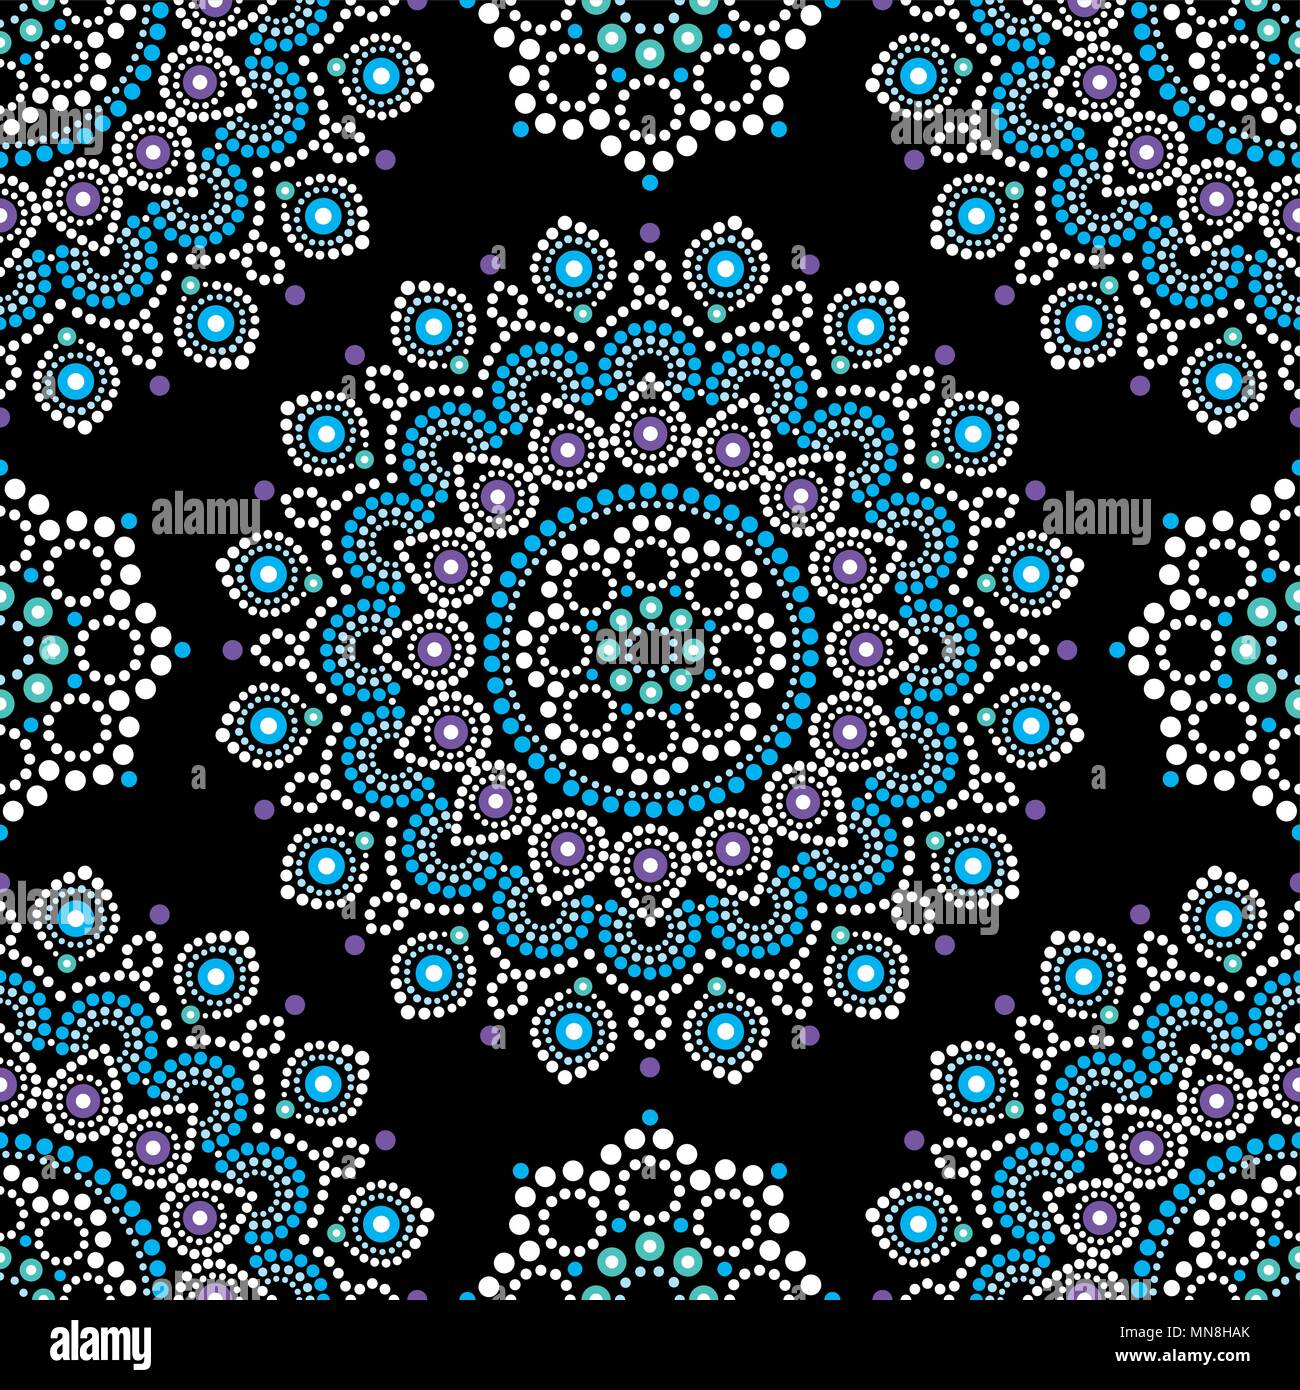 Dot painting vector seamless pattern with mandalas